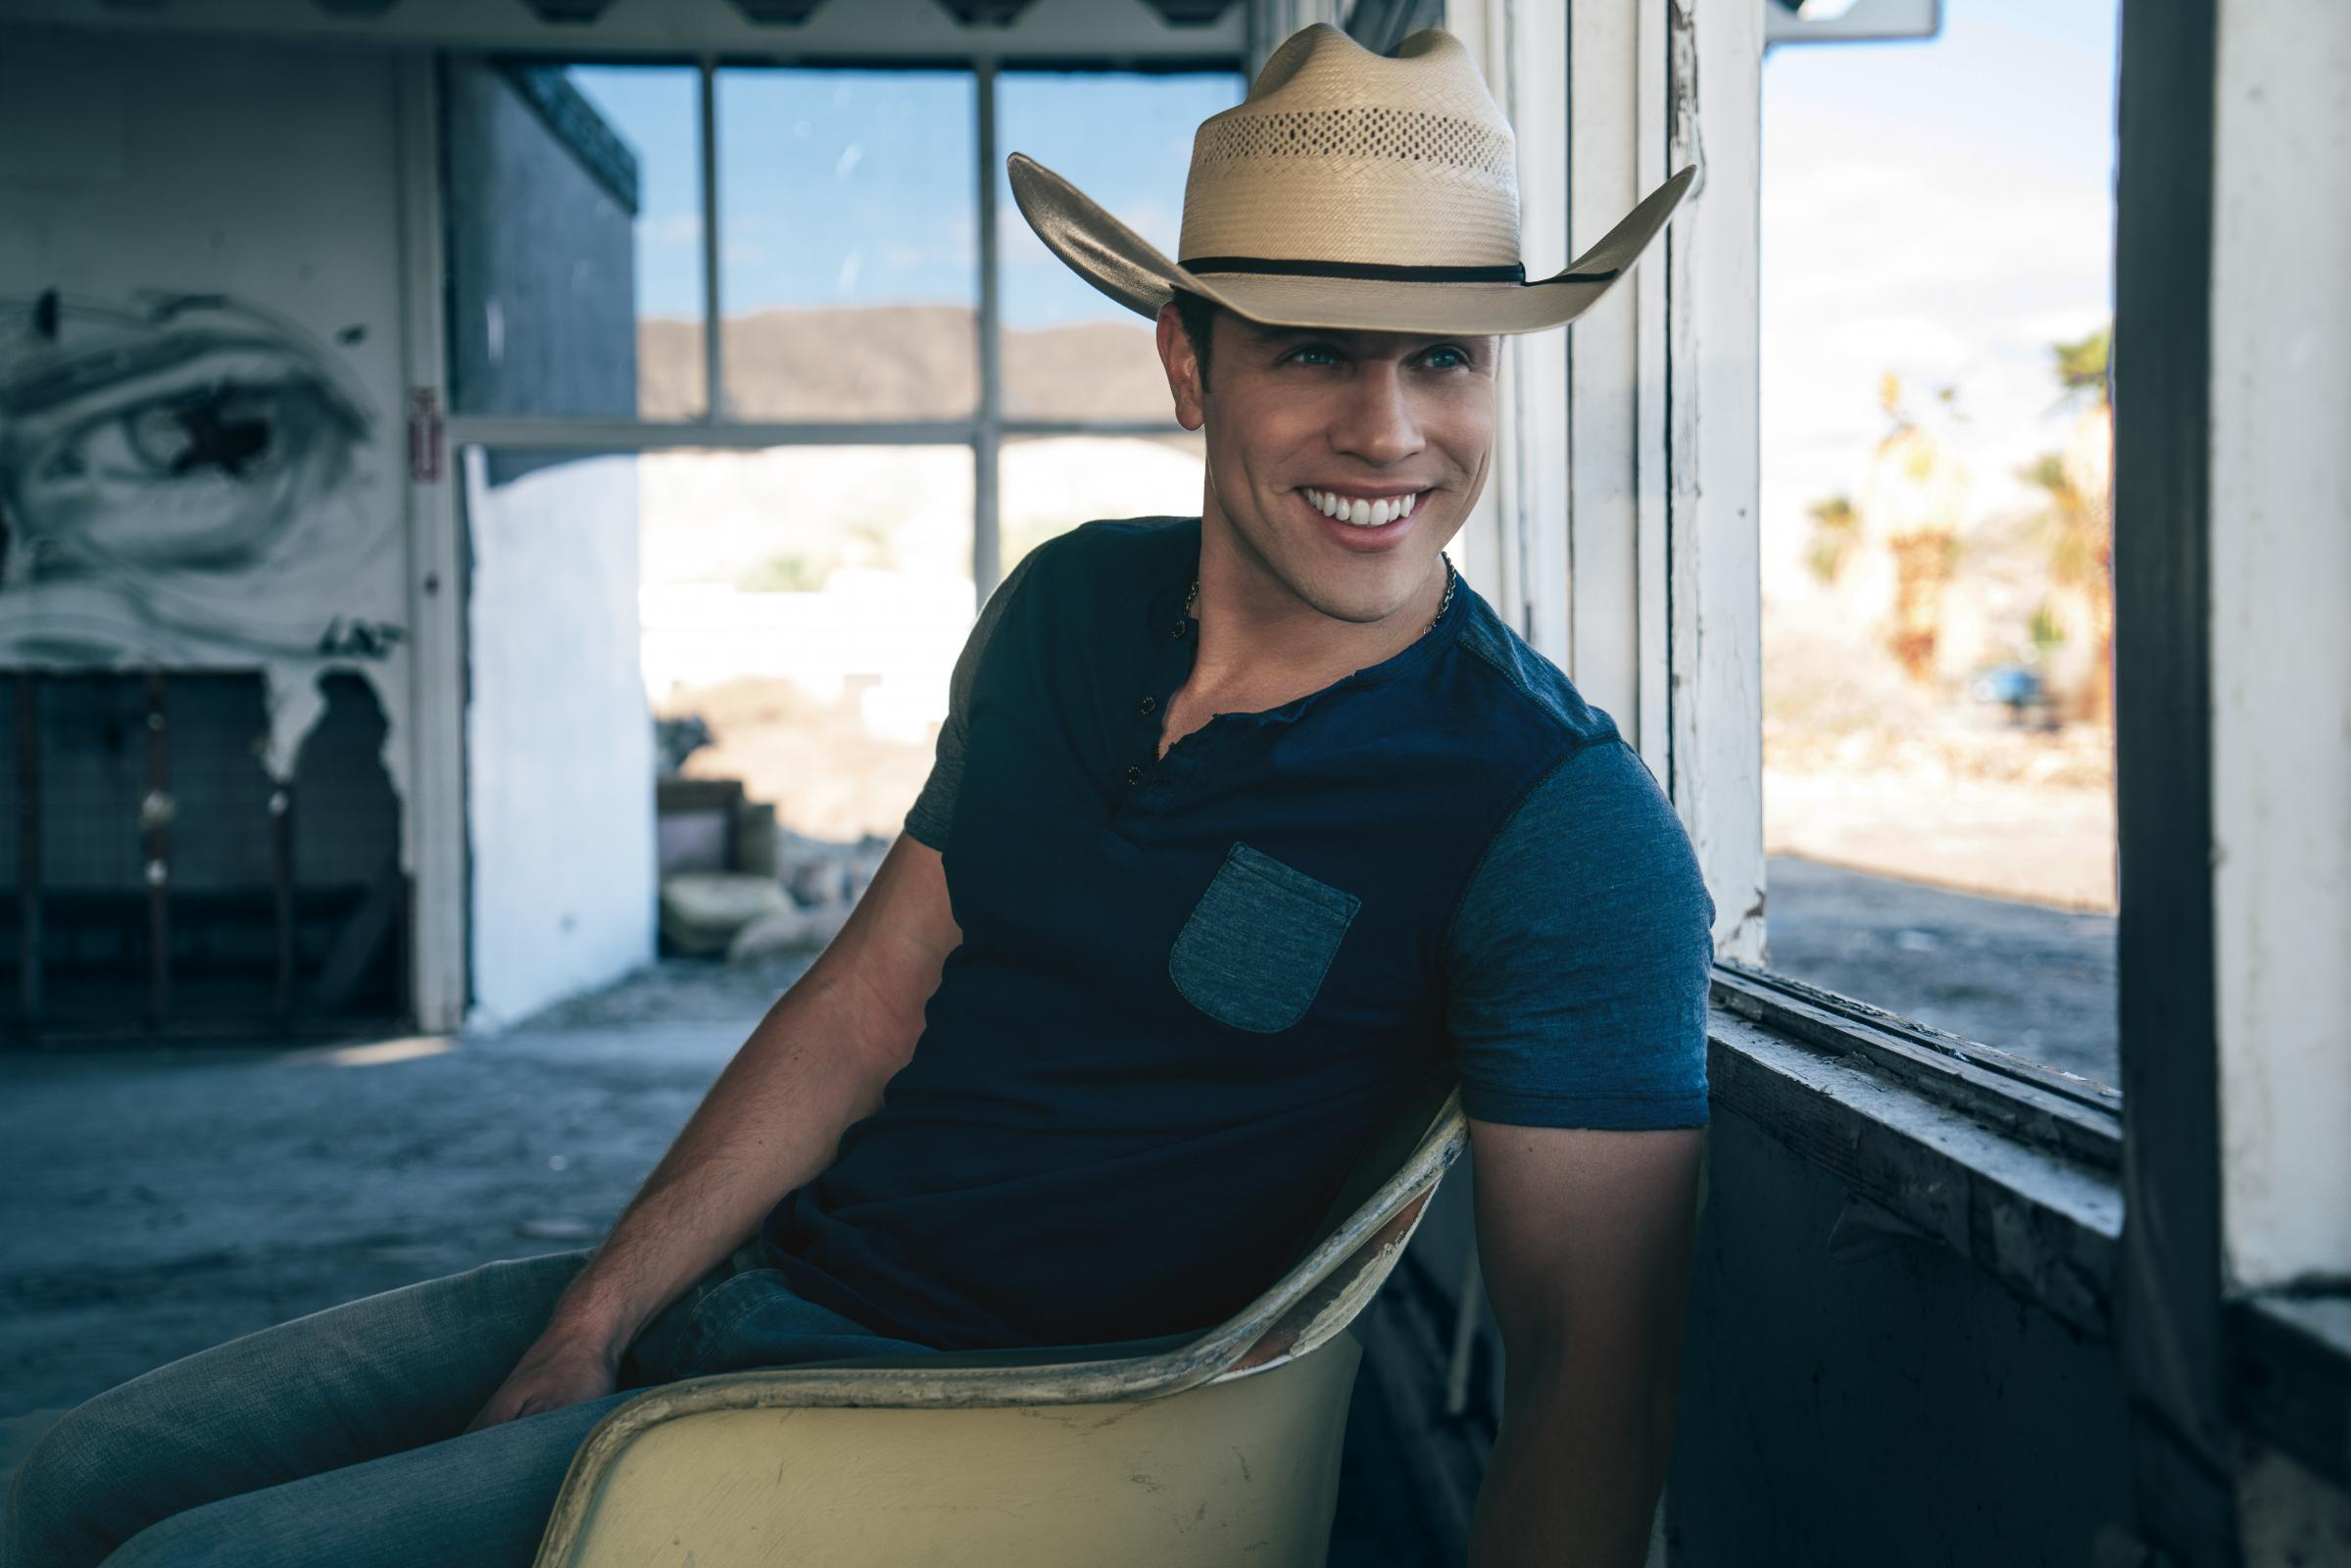 nra country presents dustin lynch and granger smith at the great american outdoor show atv illustrated atv illustrated